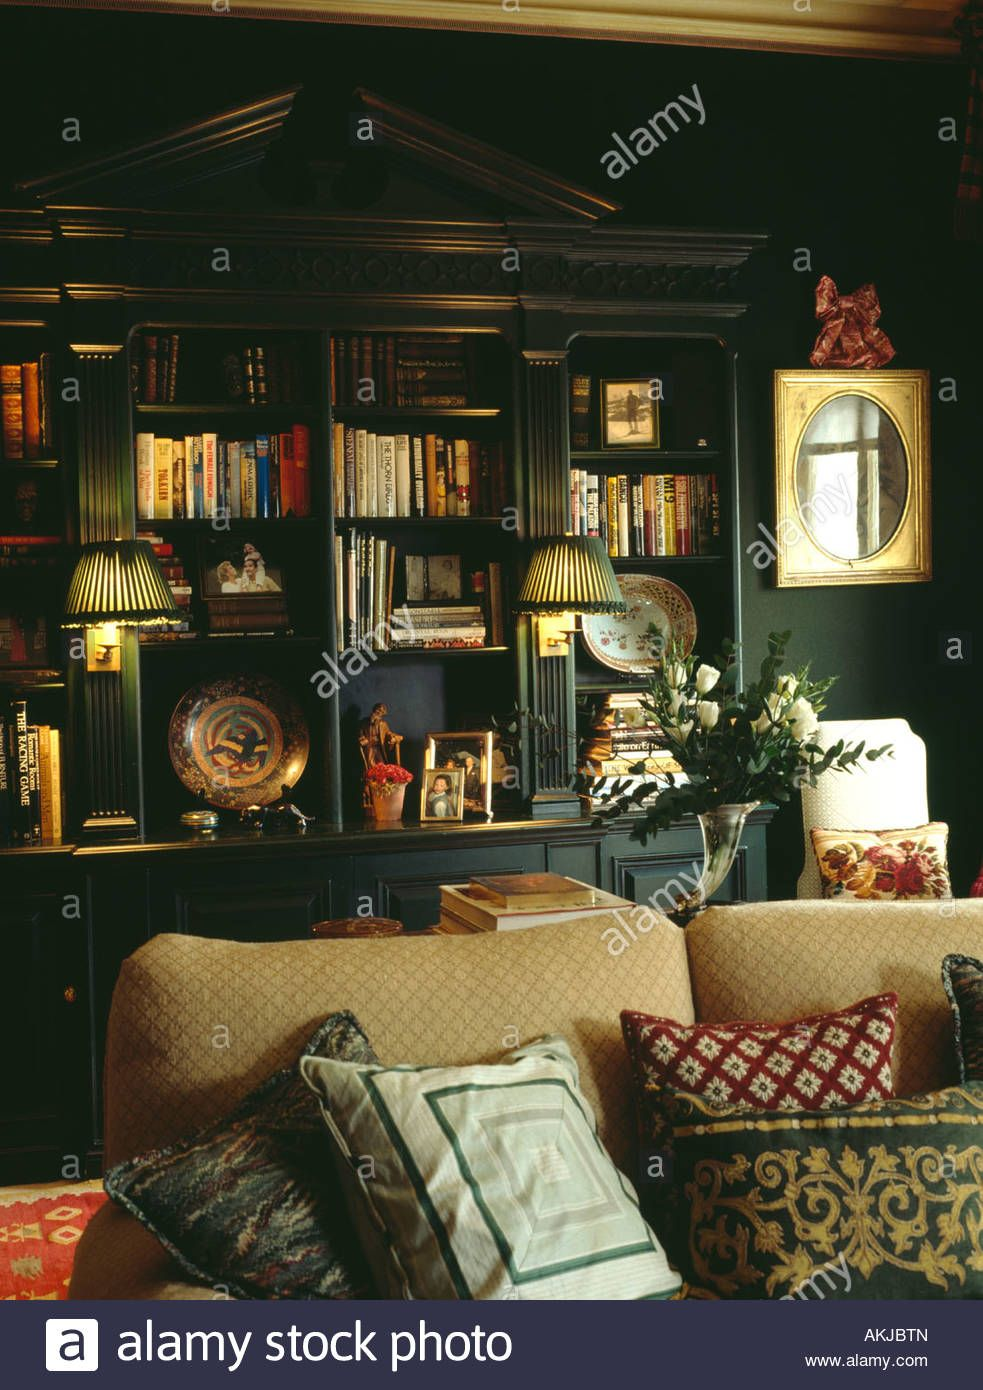 Lighted lamps on fitted bookshelves in dark green living